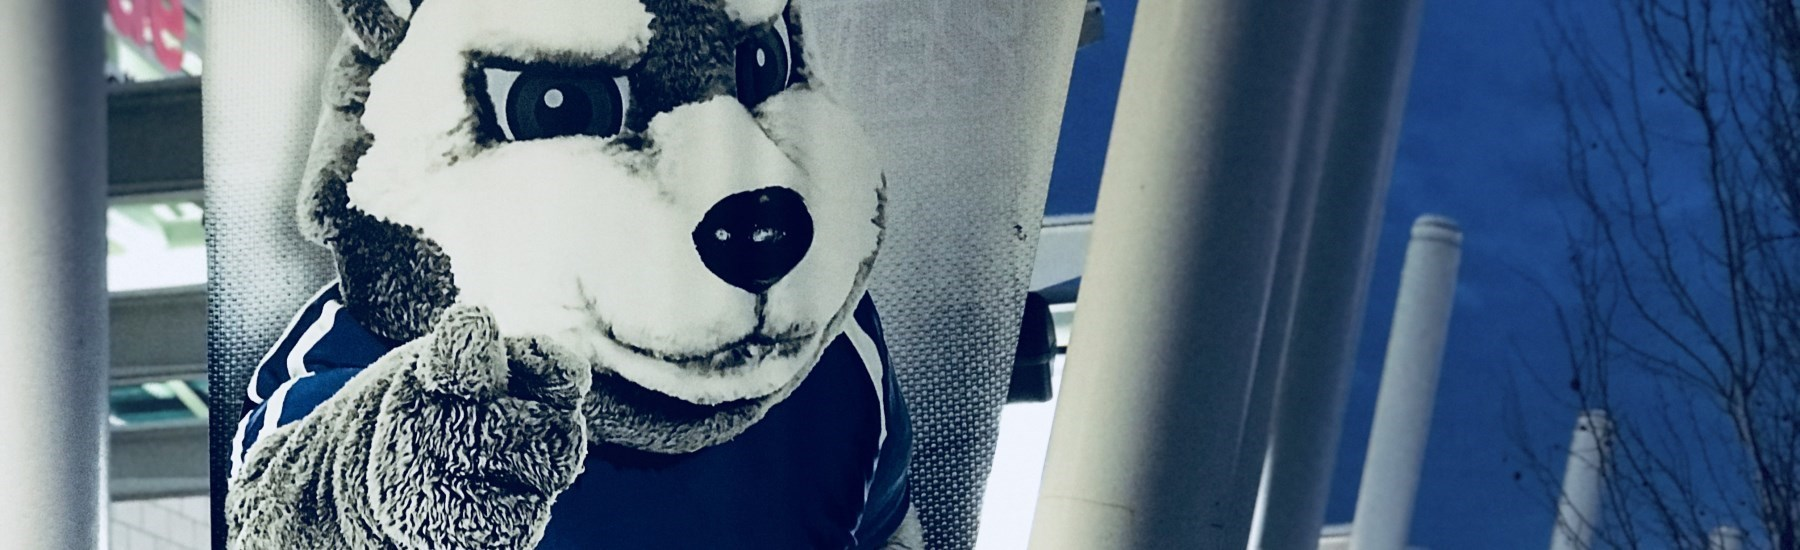 Huskies Mascot King working out